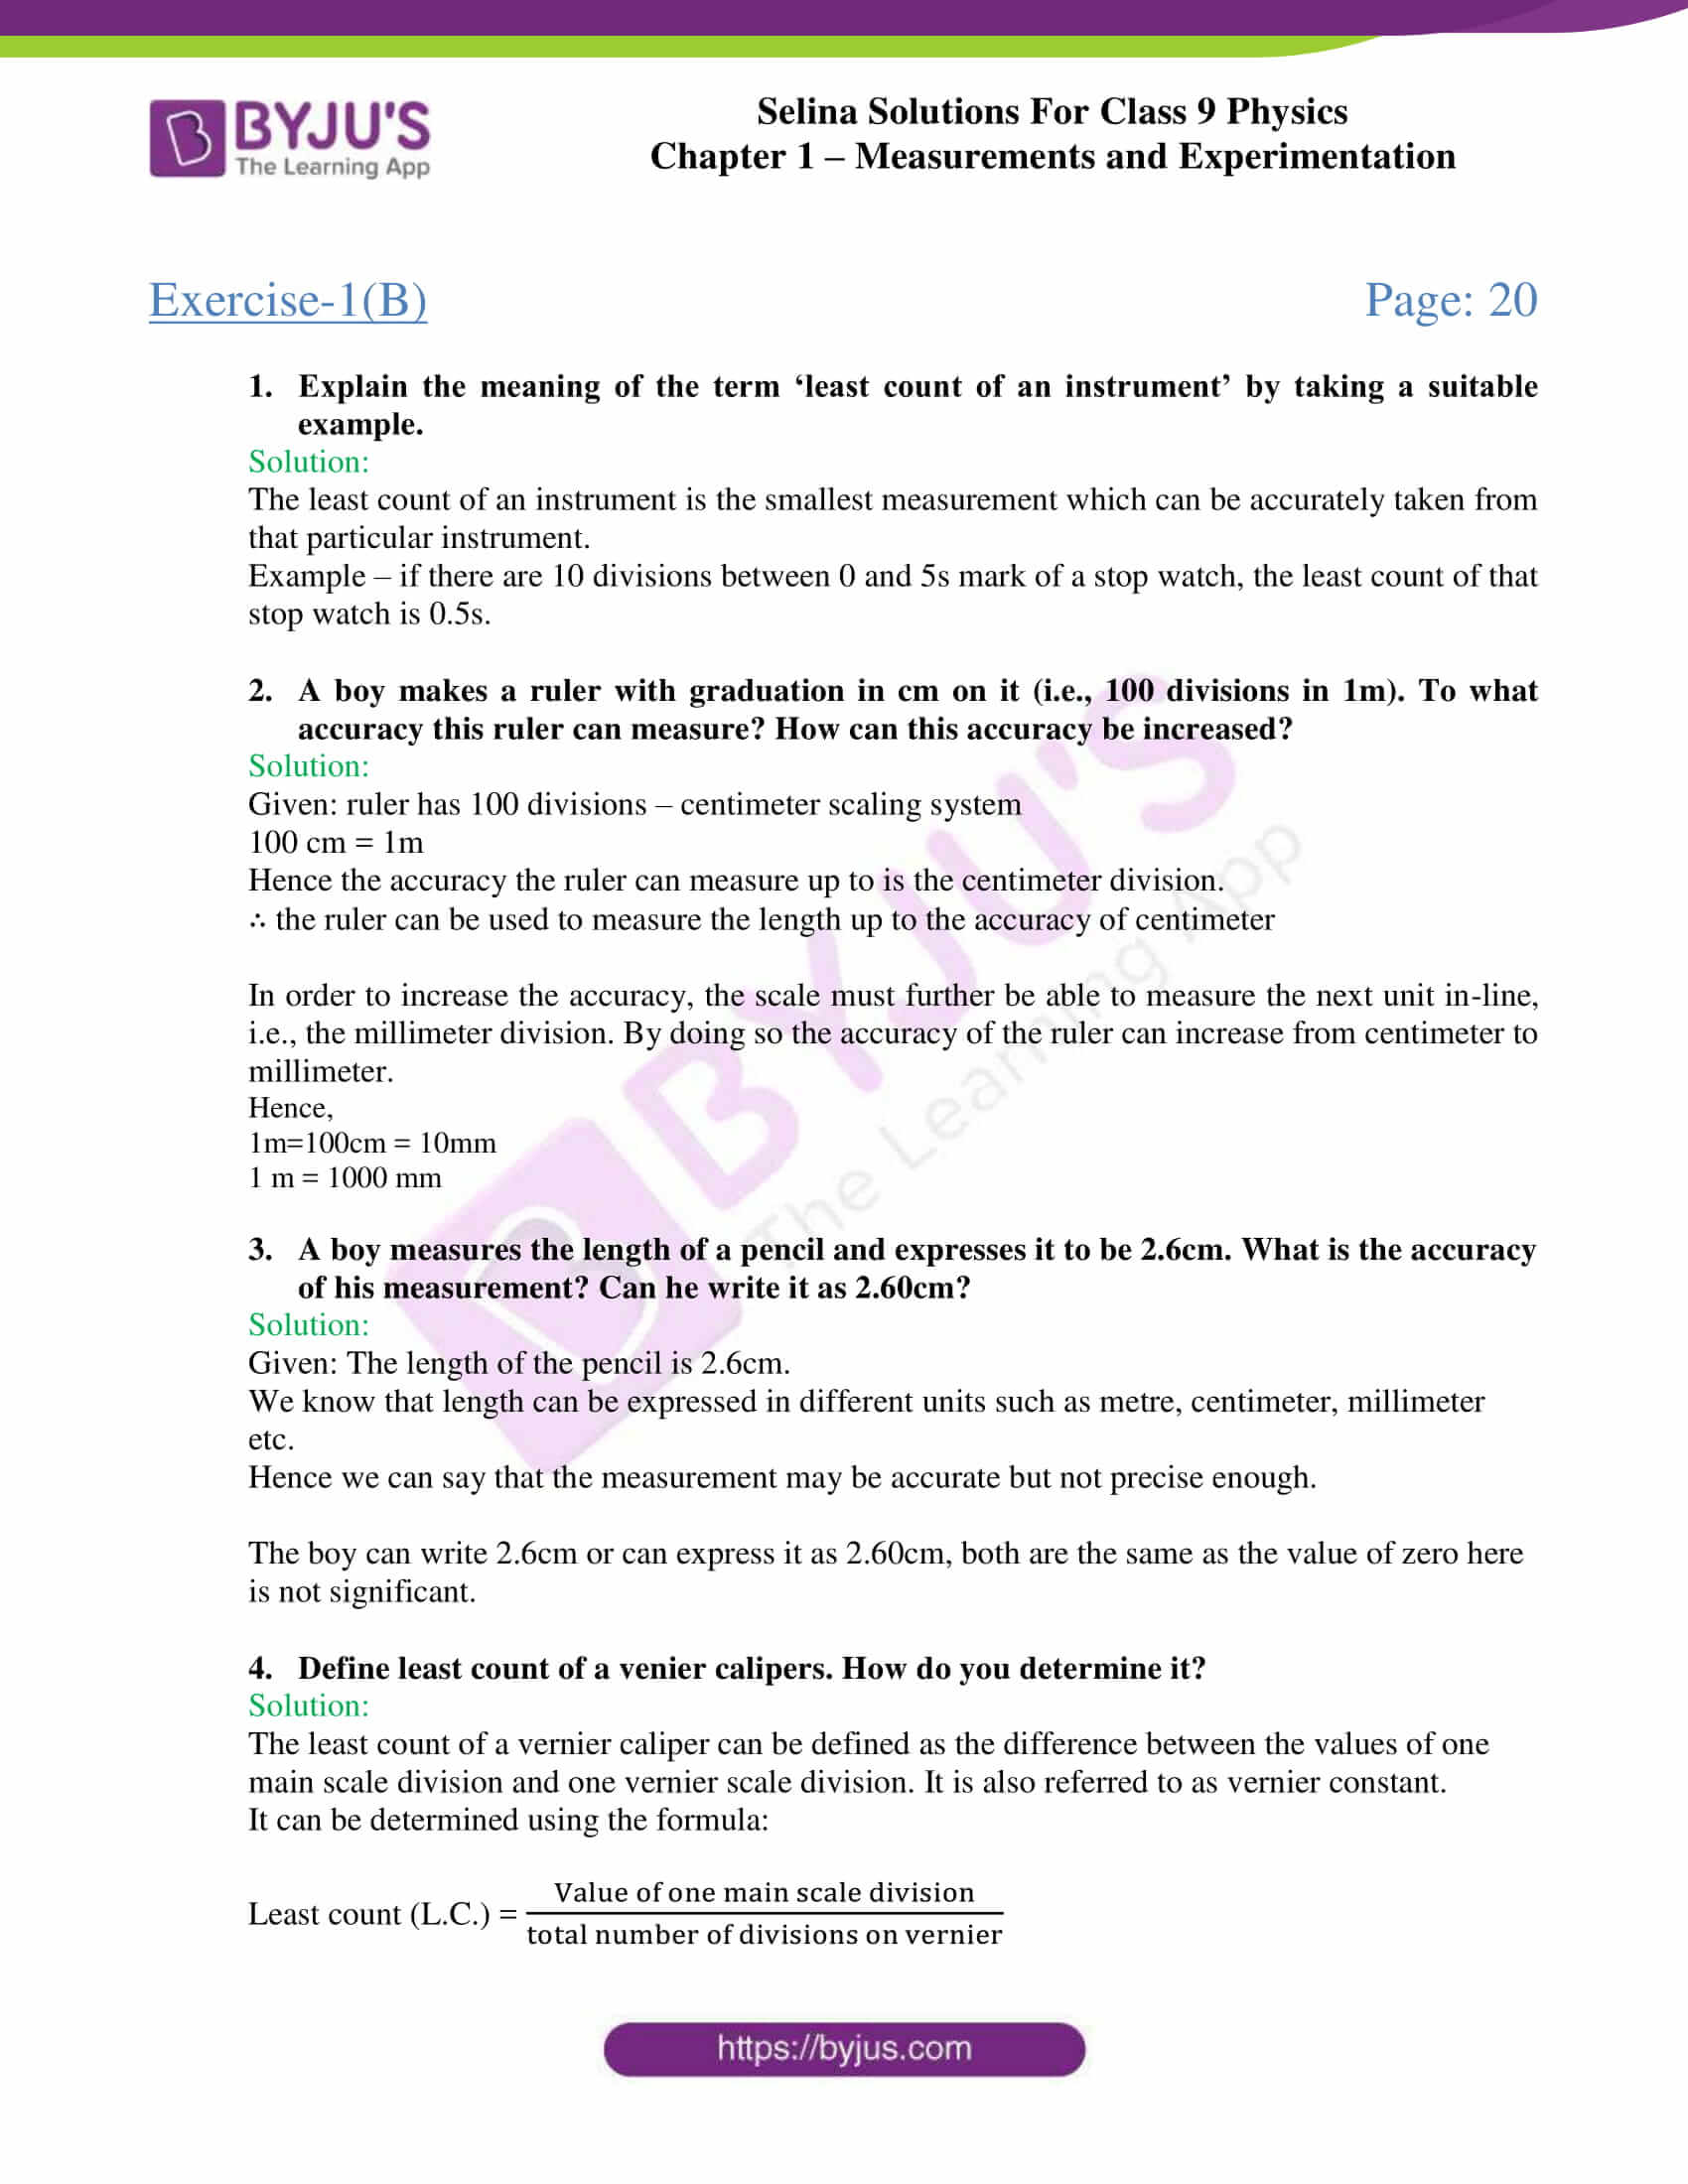 selina solutions class 9 physics chapter 1 Measurements and Experimentation part 10